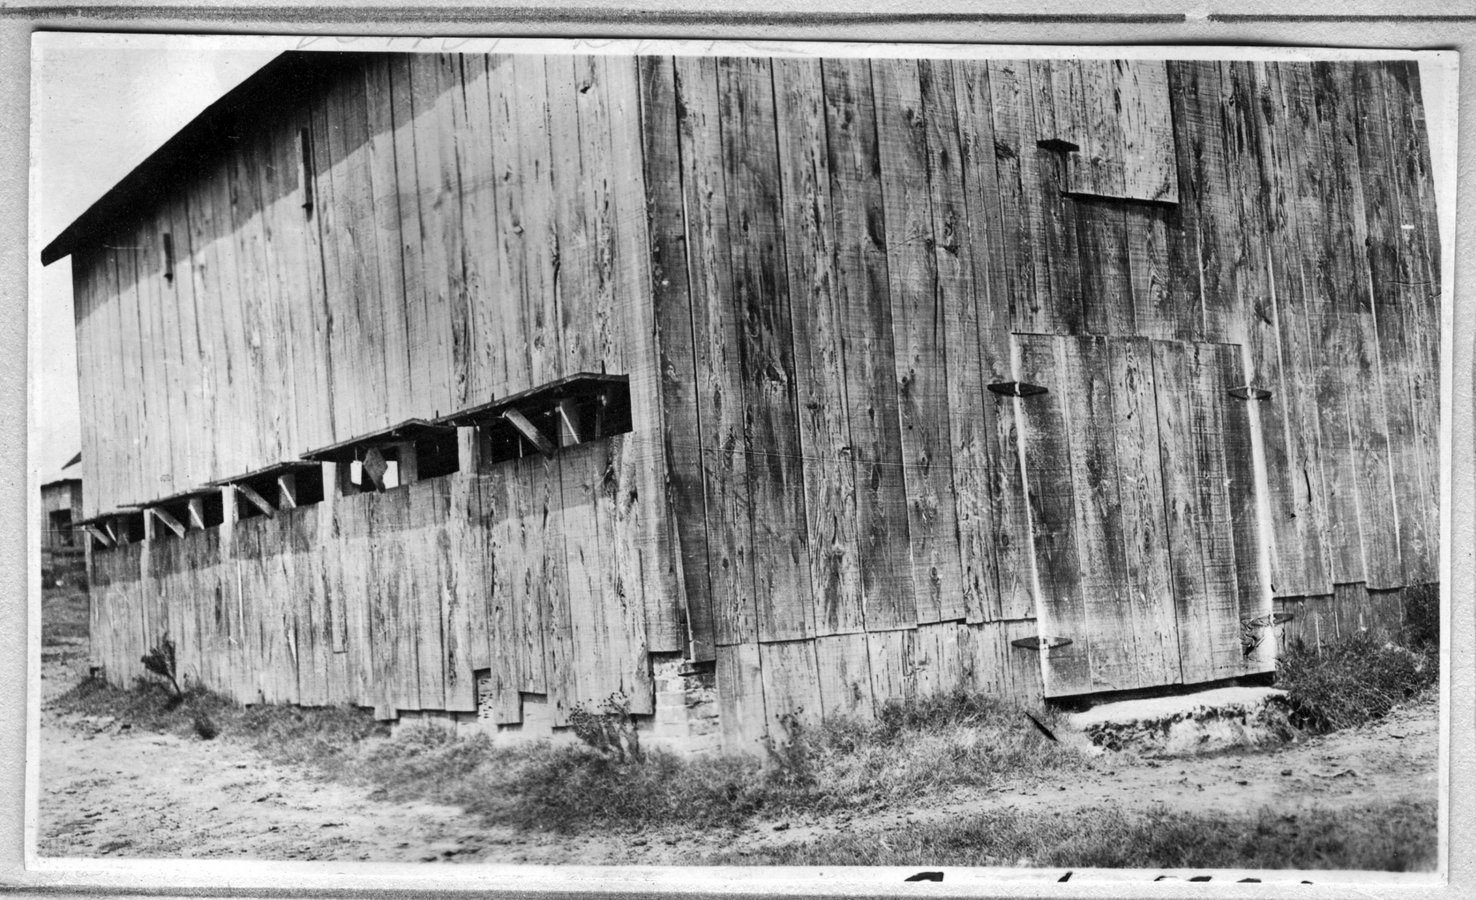 003~W. M. P. Droke Barn Aug 1920.jpg